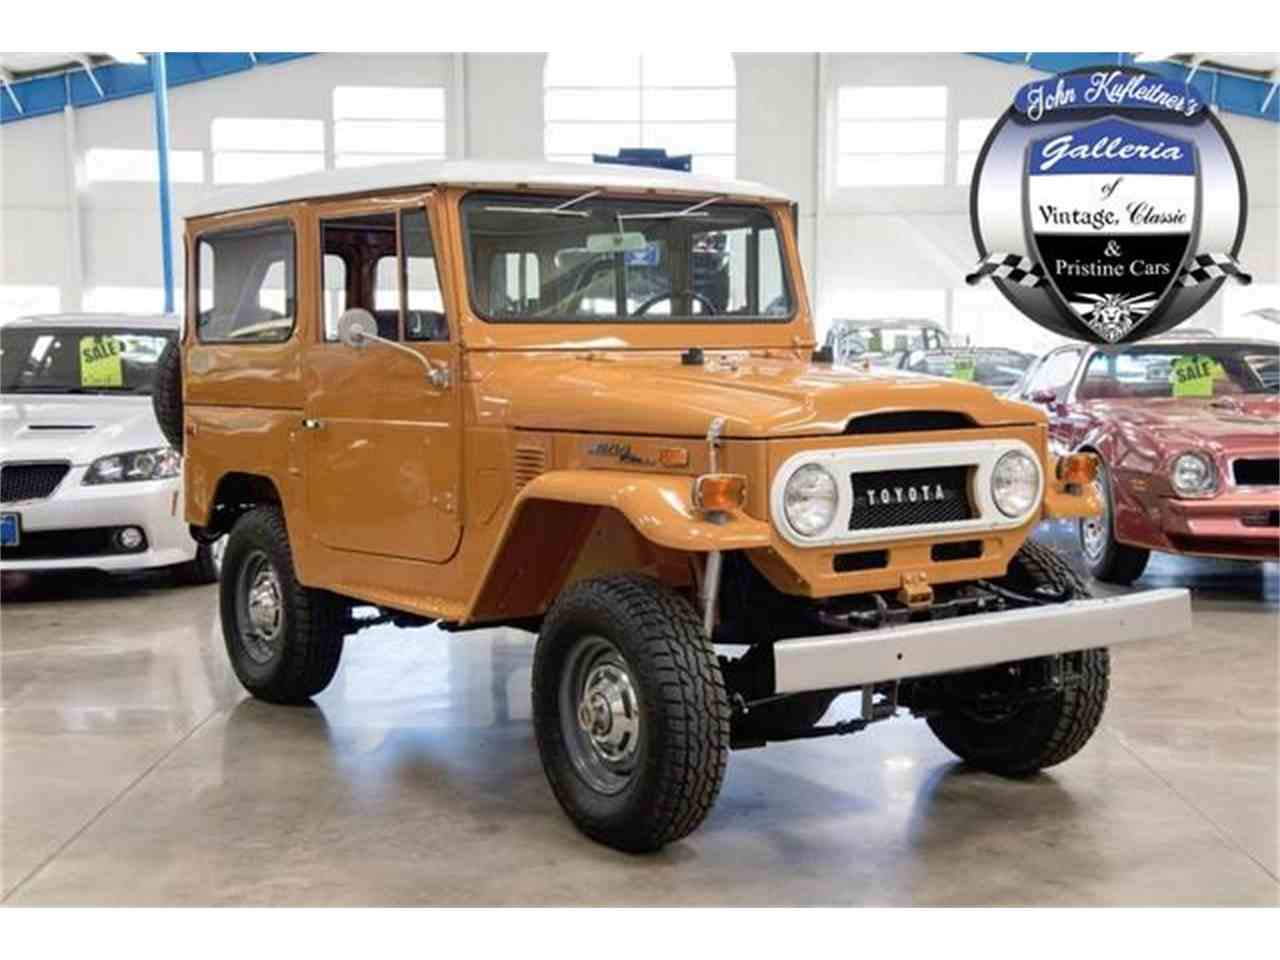 Buy Trail Teams Badge Fj Cruiser Special Edition Sold Individually 1973 Toyota Land Interior Cc1006508 Cc1055925 Cc1106756 Cc1094024 Cc1094422 Fj40144844